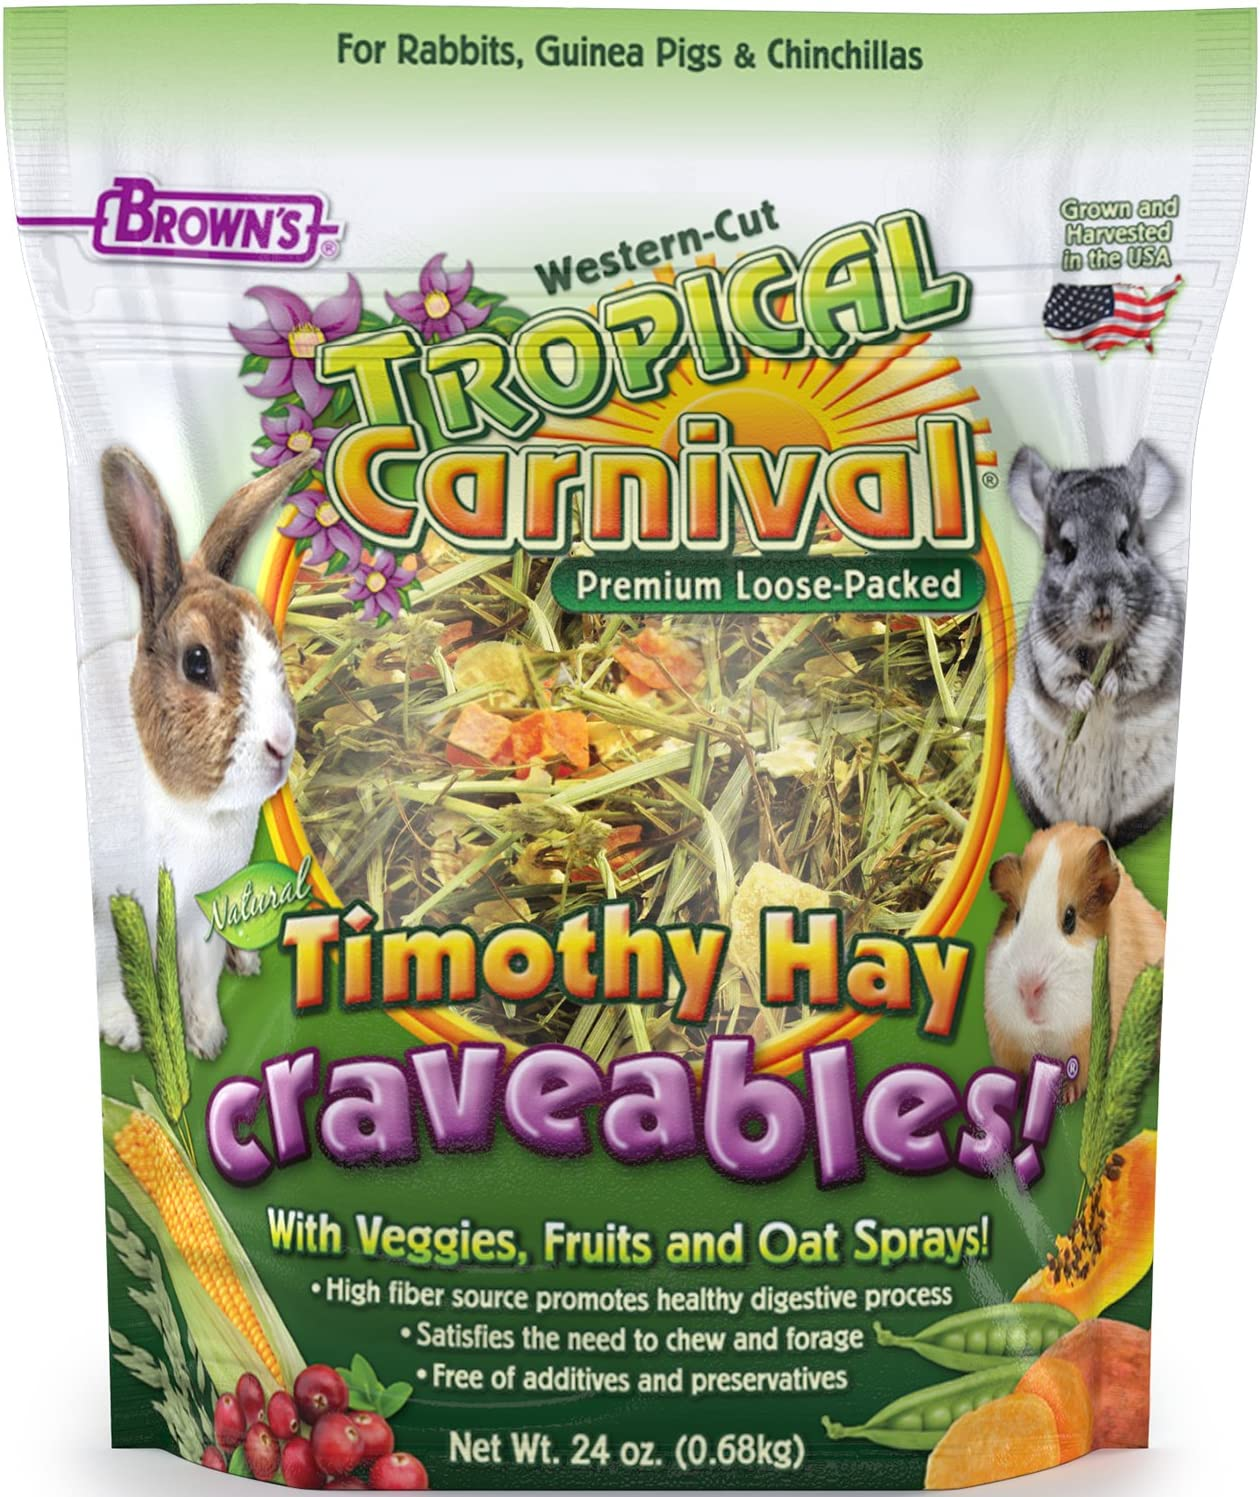 F.M. Brown's Tropical Carnival Natural Timothy Hay Craveables with Veggies, Fruits, and Oat Sprays, Foraging Treat with High Fiber for Healthy Digestion, 24oz